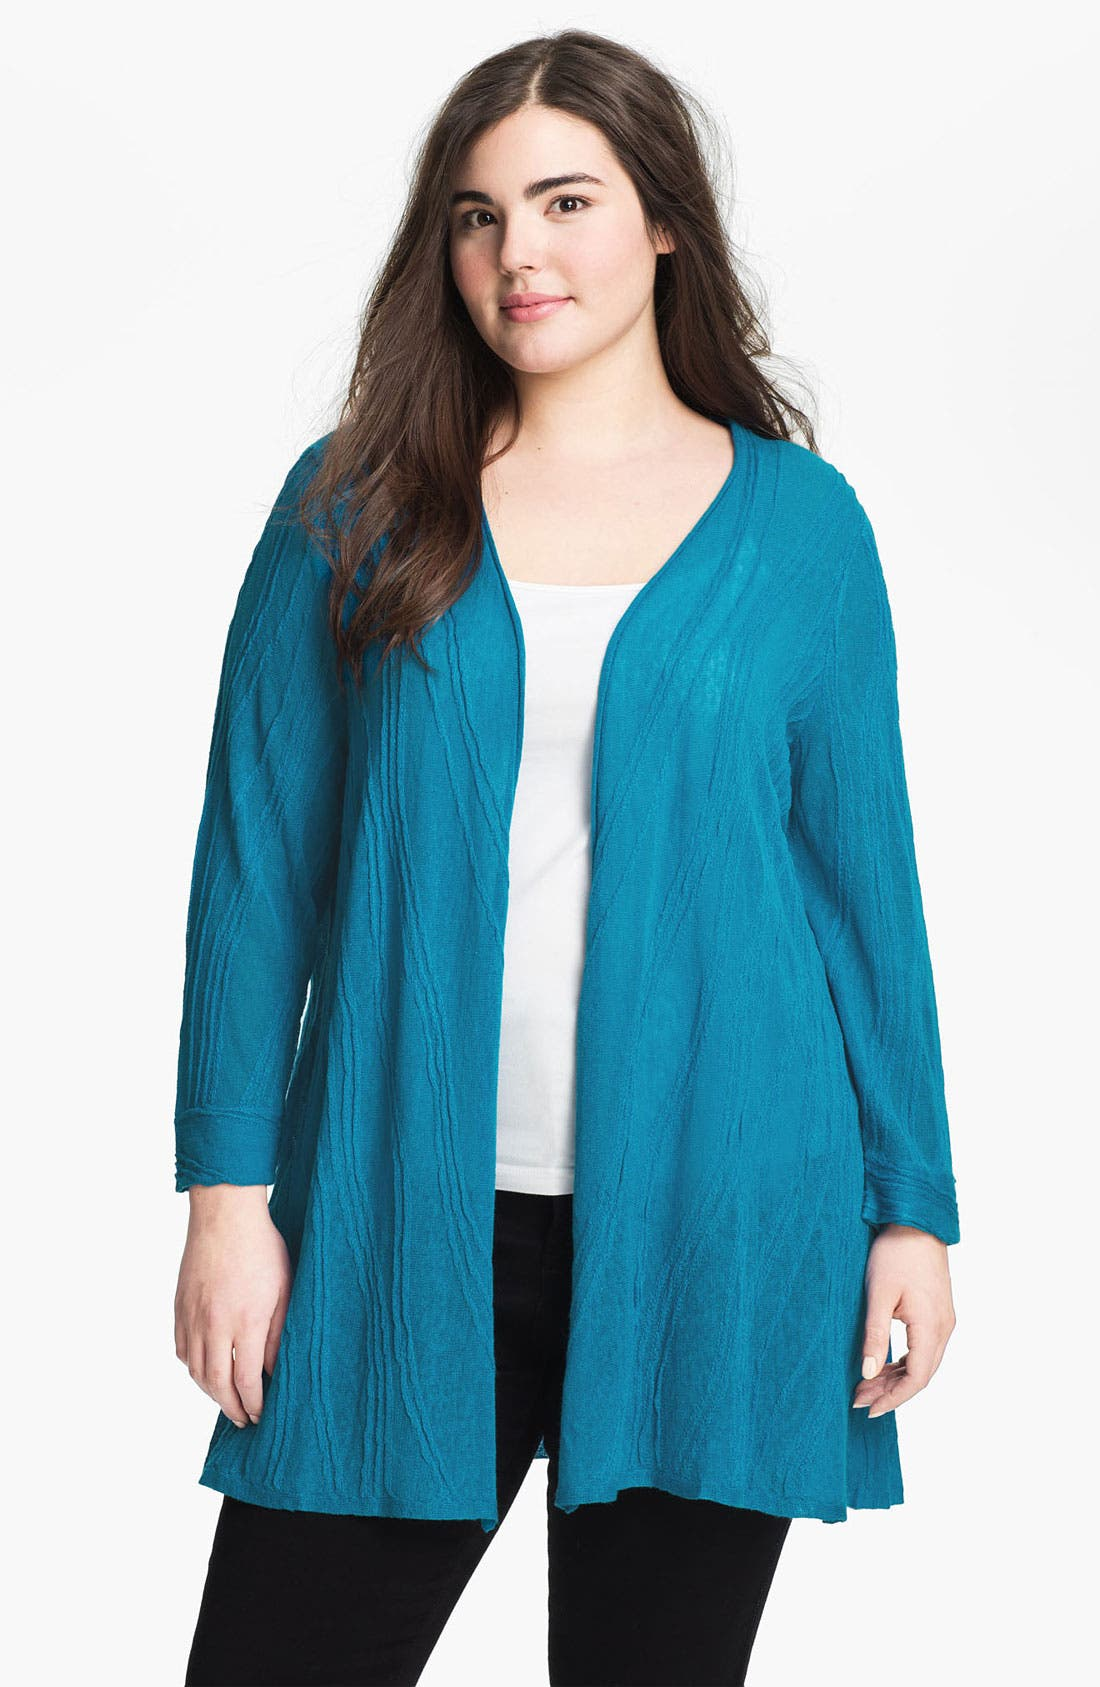 Alternate Image 1 Selected - Nic + Zoe Textured Cardigan (Plus)